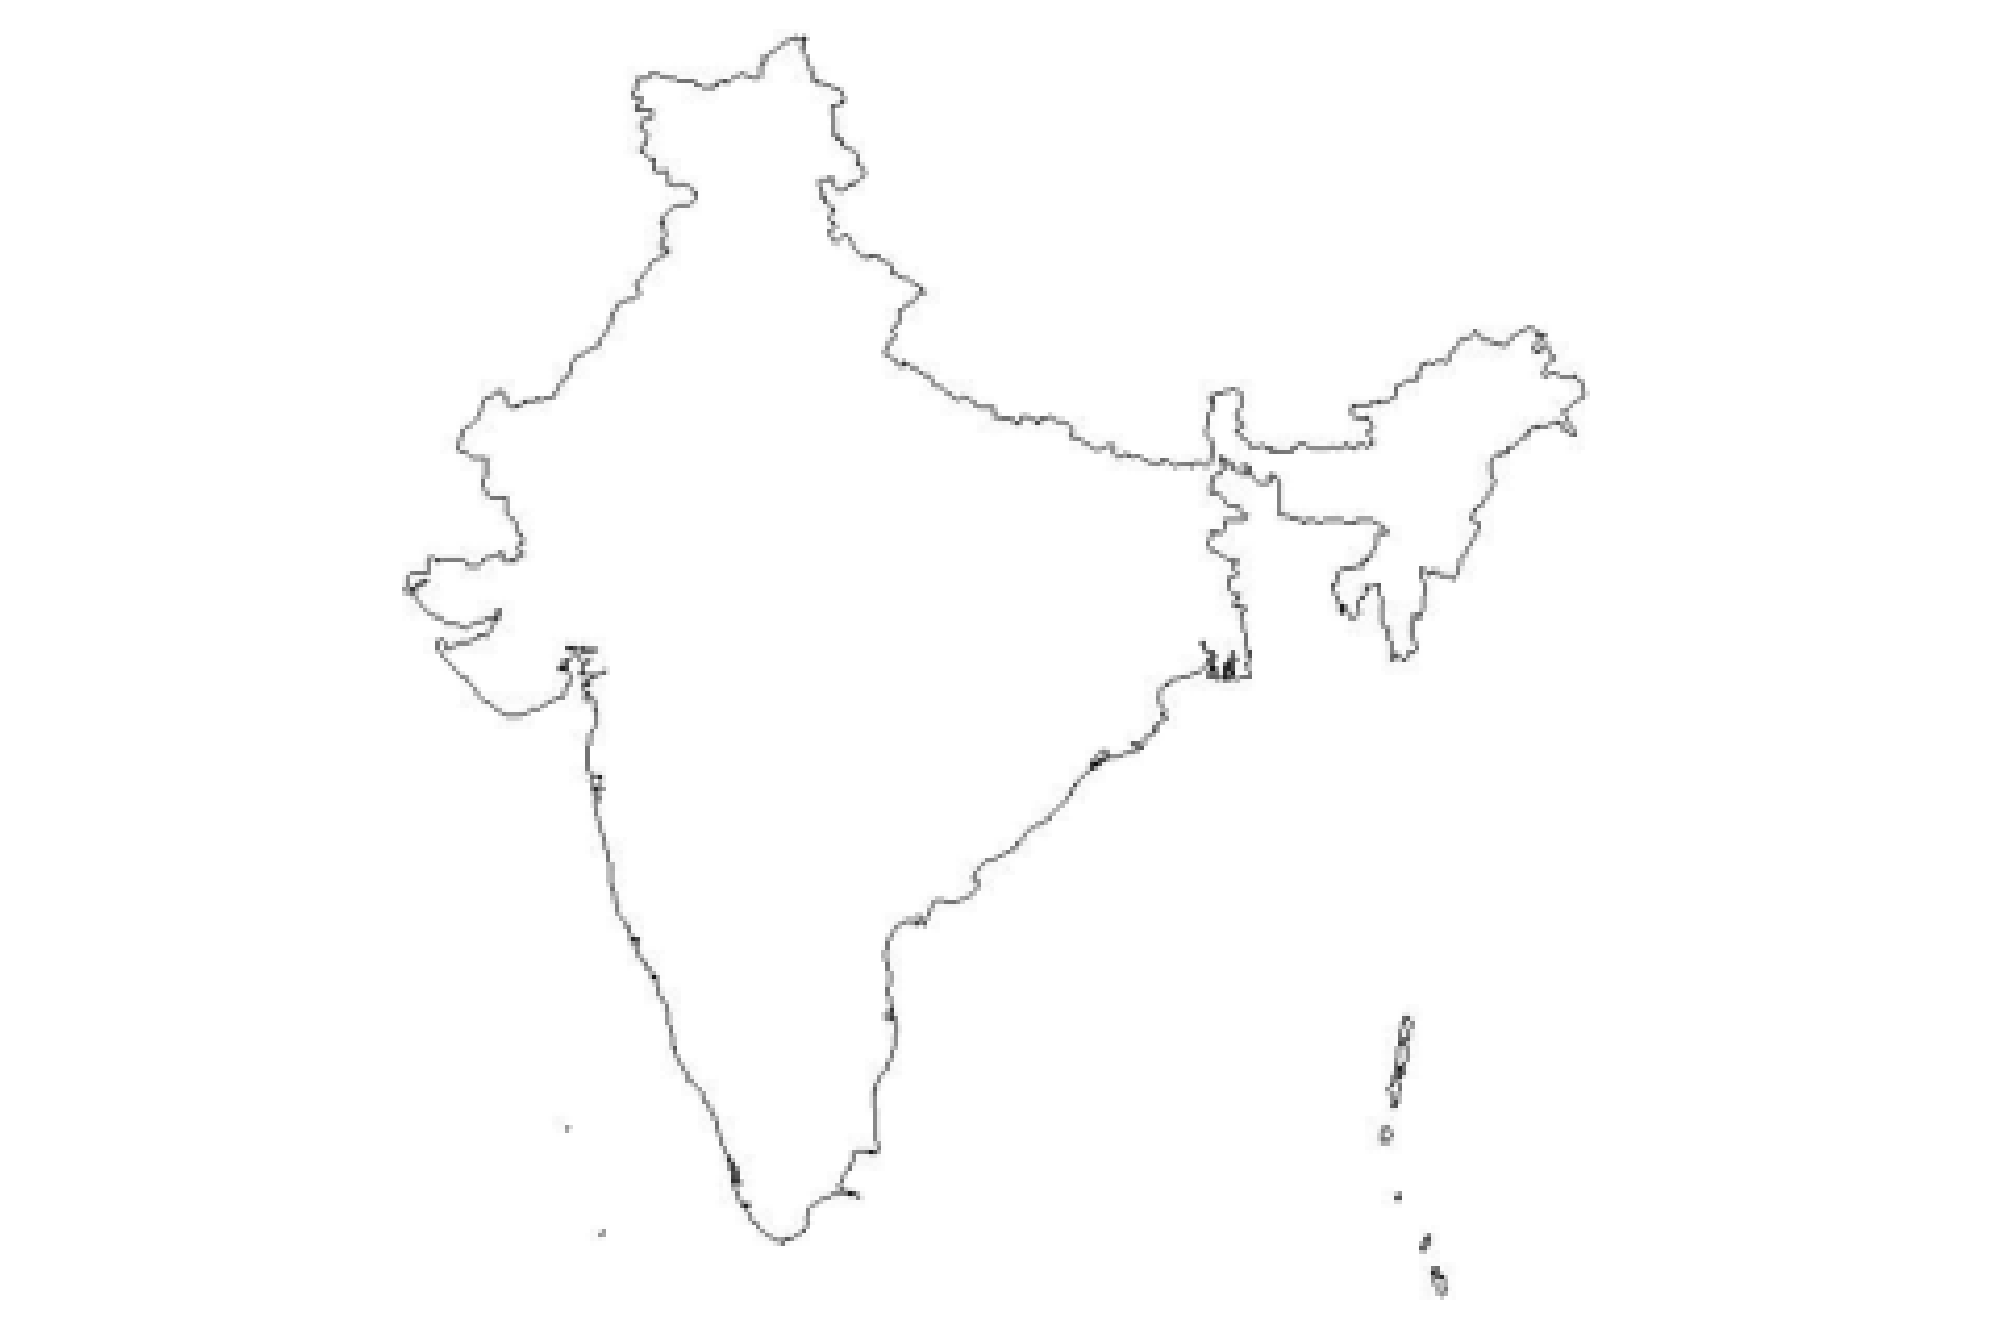 1. An original image showing a textbook map of India